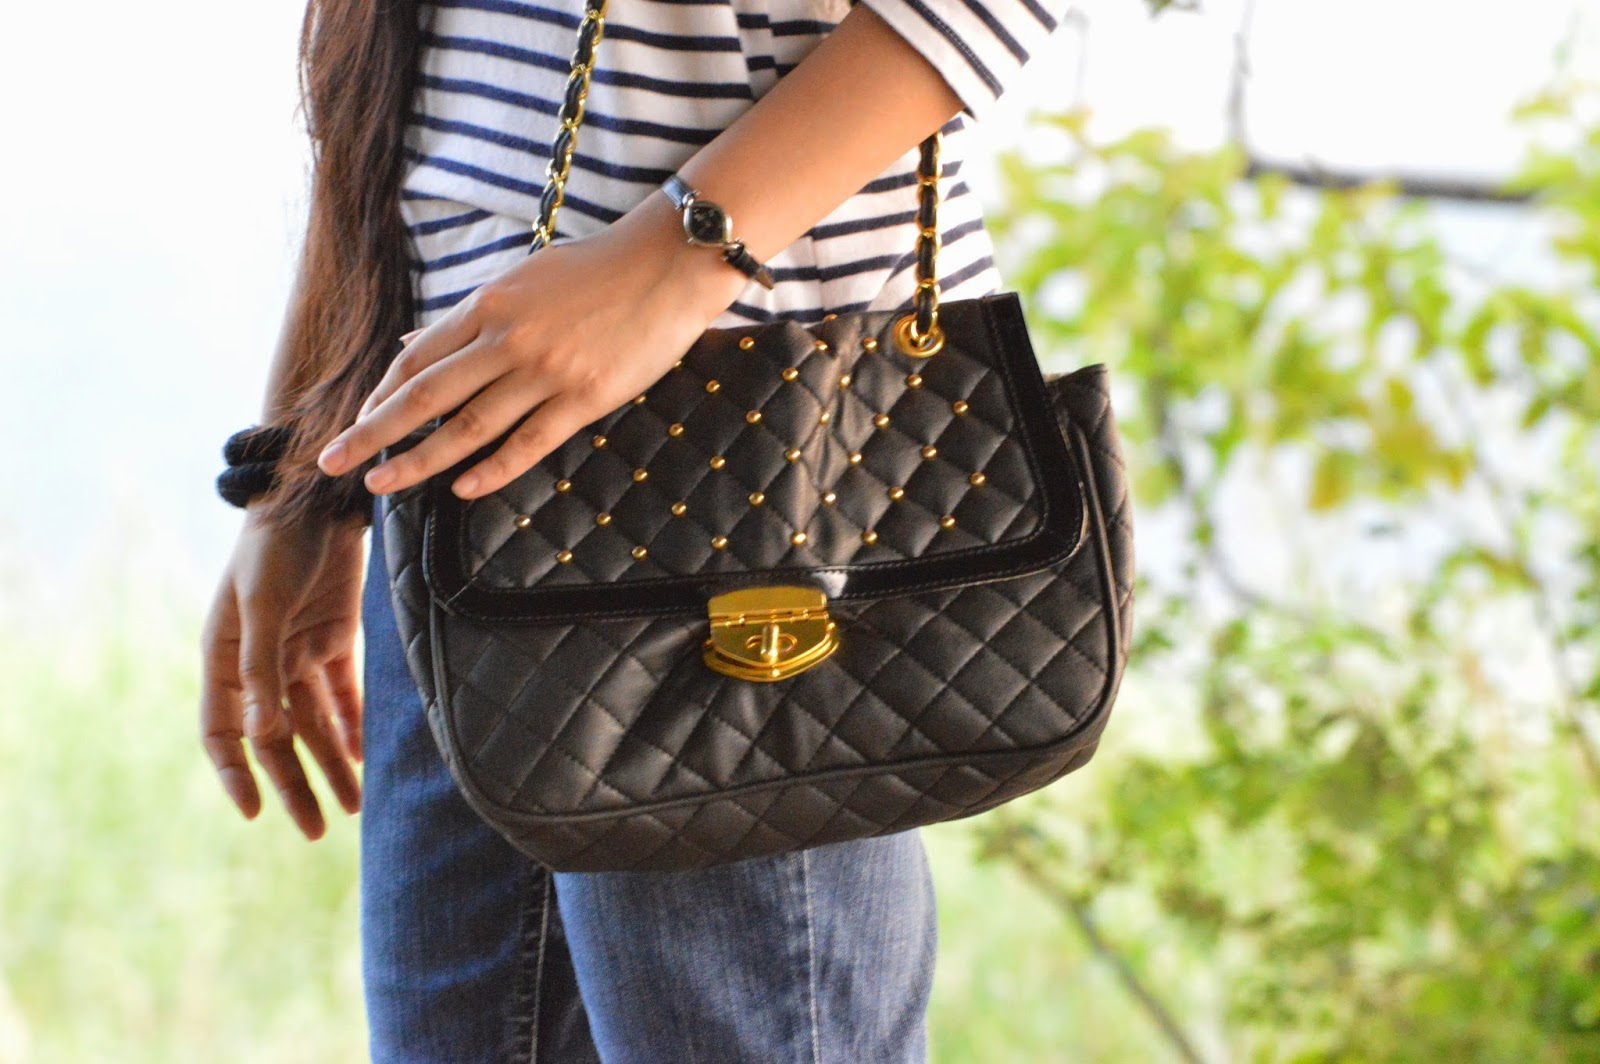 mumbai fashion blogger, black quilted purse, stripes, street shopping in mumbai, bandra street shoppping, what to buy in mumbai, fashion blogger, gold and black bag